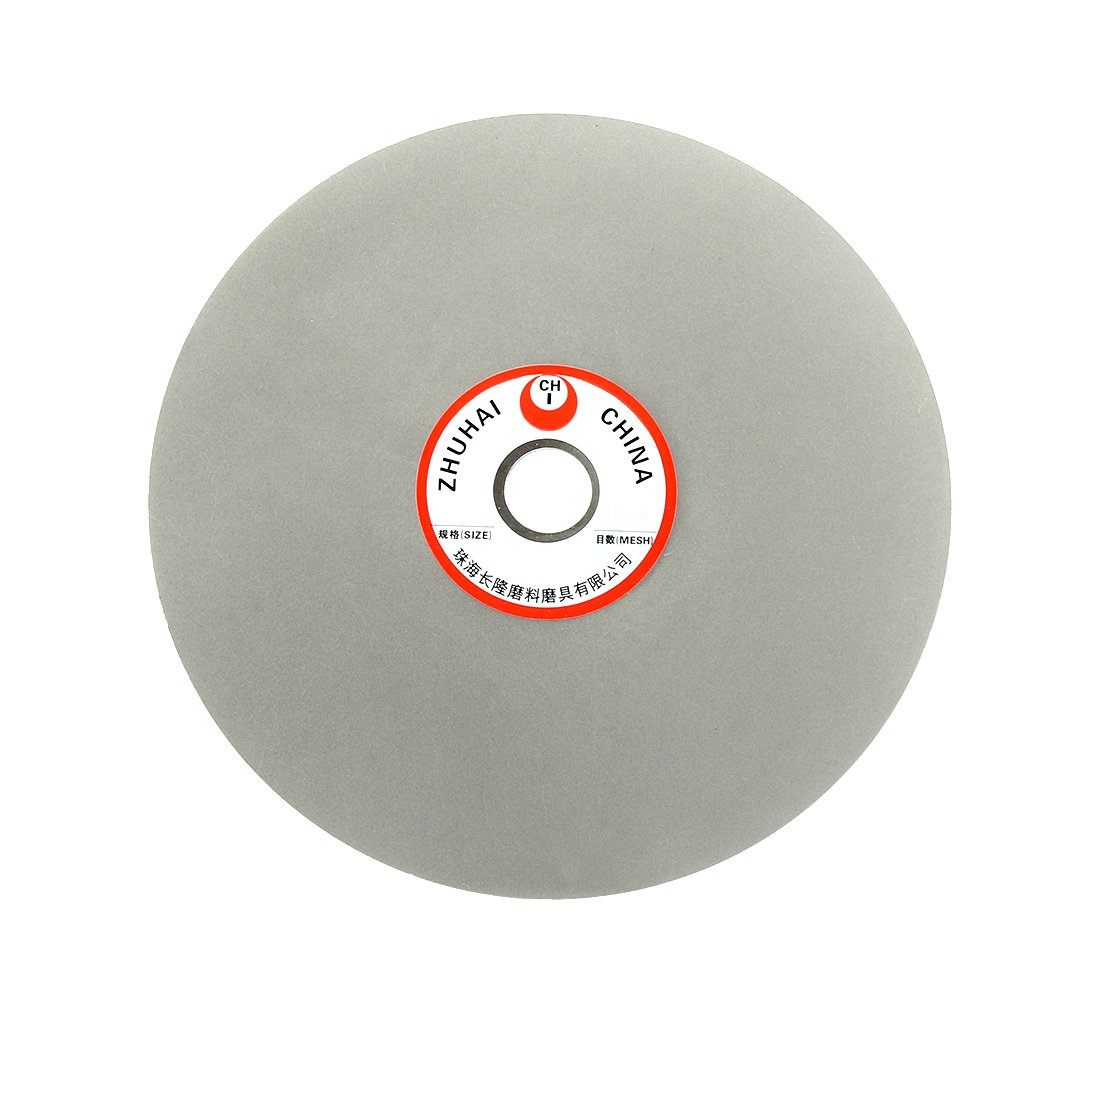 uxcell 6-inch Grit 120 Diamond Coated Flat Lap Wheel Grinding Sanding Polishing Disc a17030900ux1362